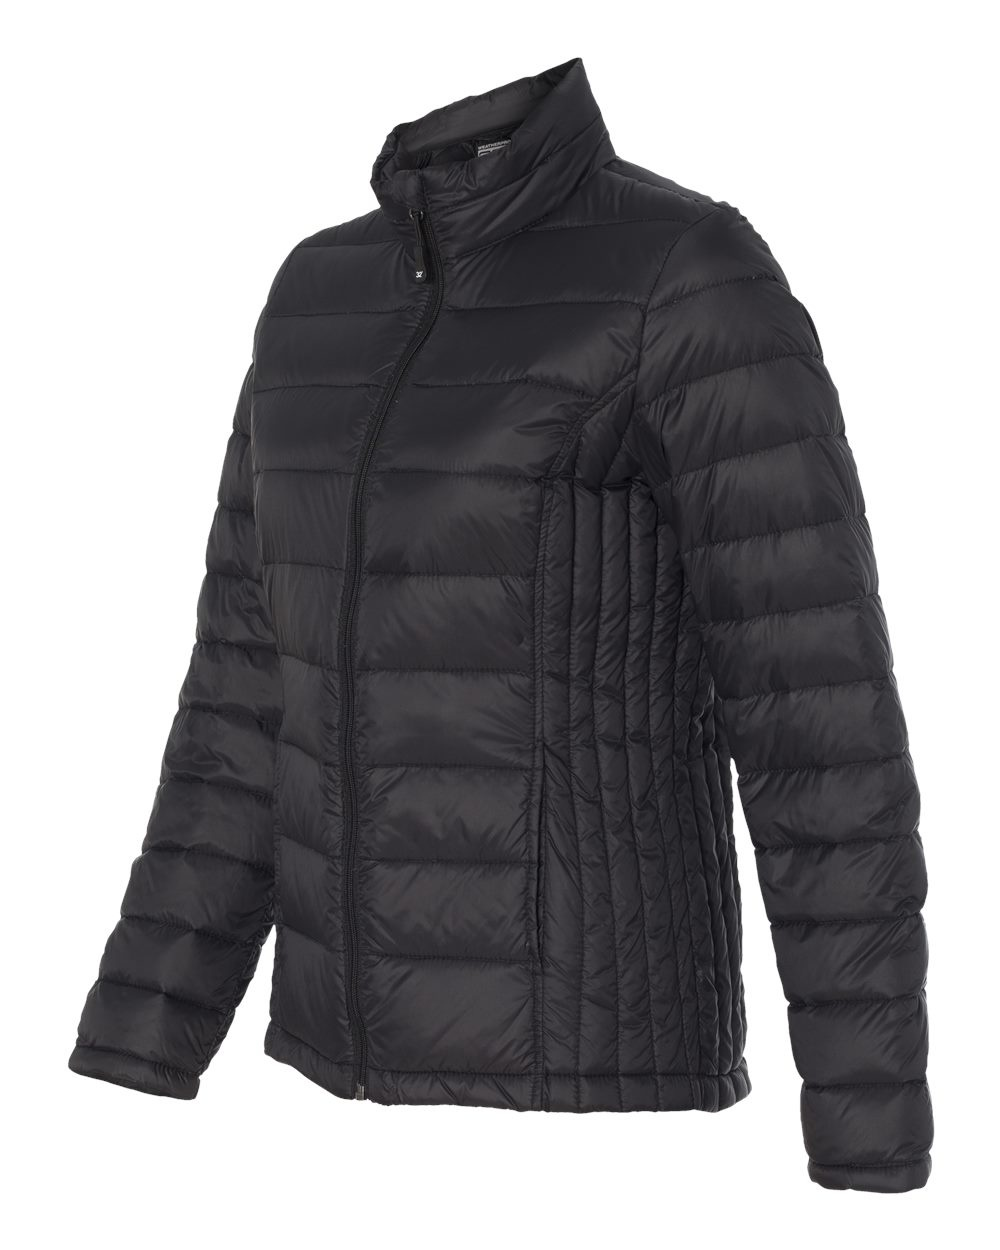 Mayfield Down Jacket